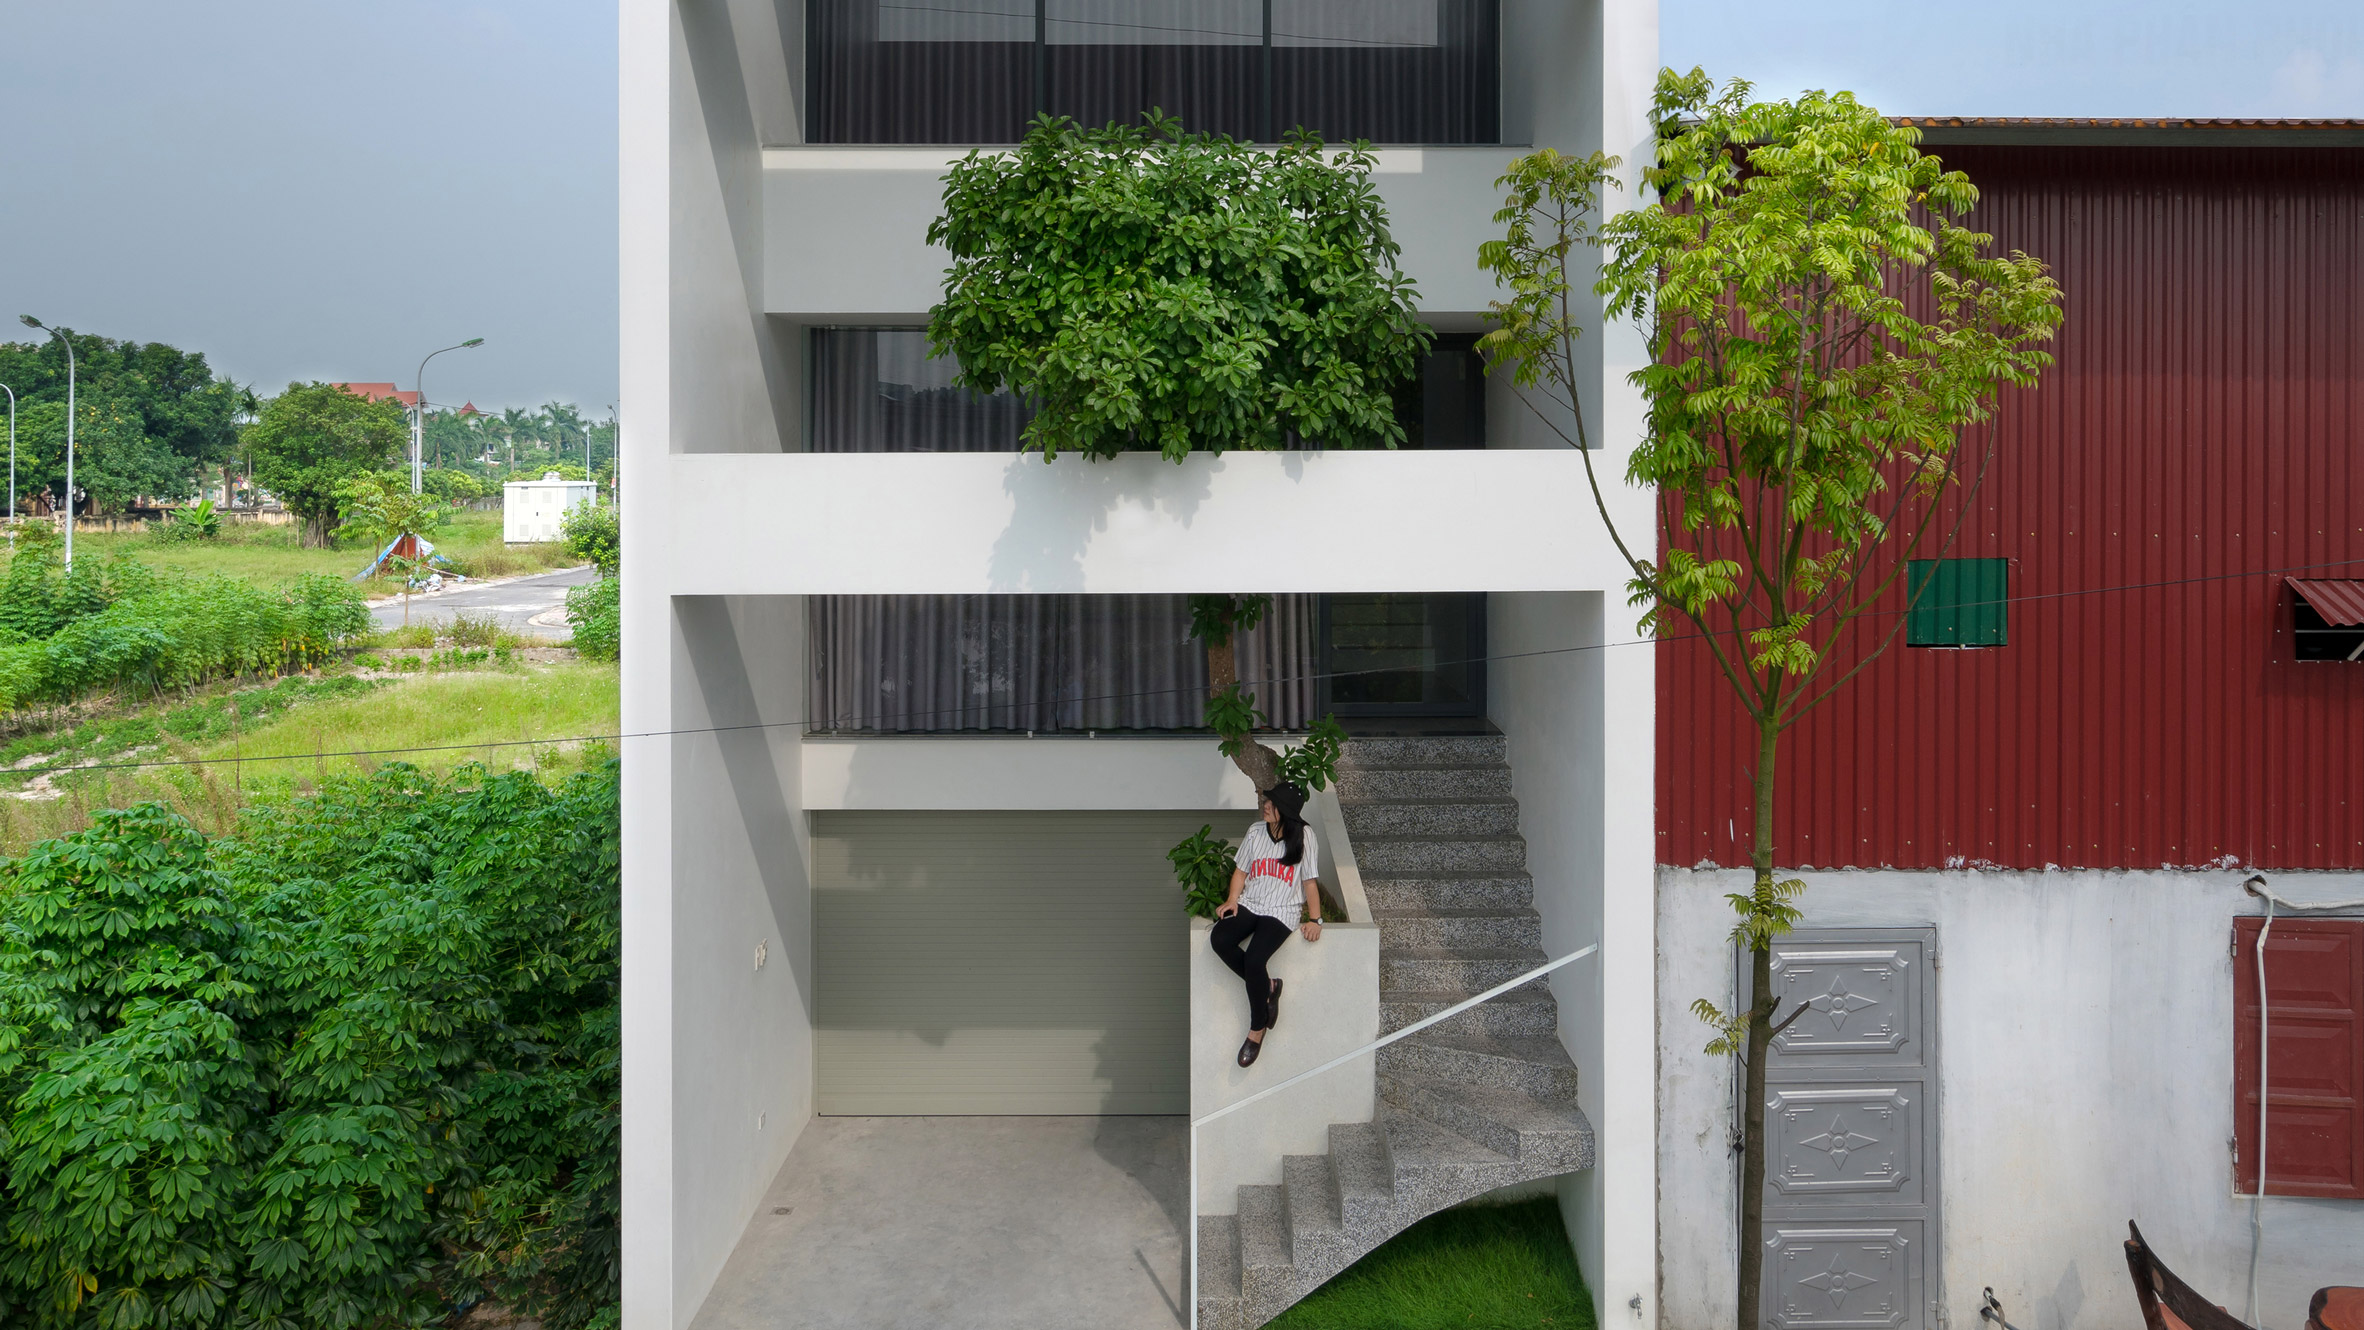 Trees grow up inside narrow Vietnam house by Nguyen Khac Phuoc Architects